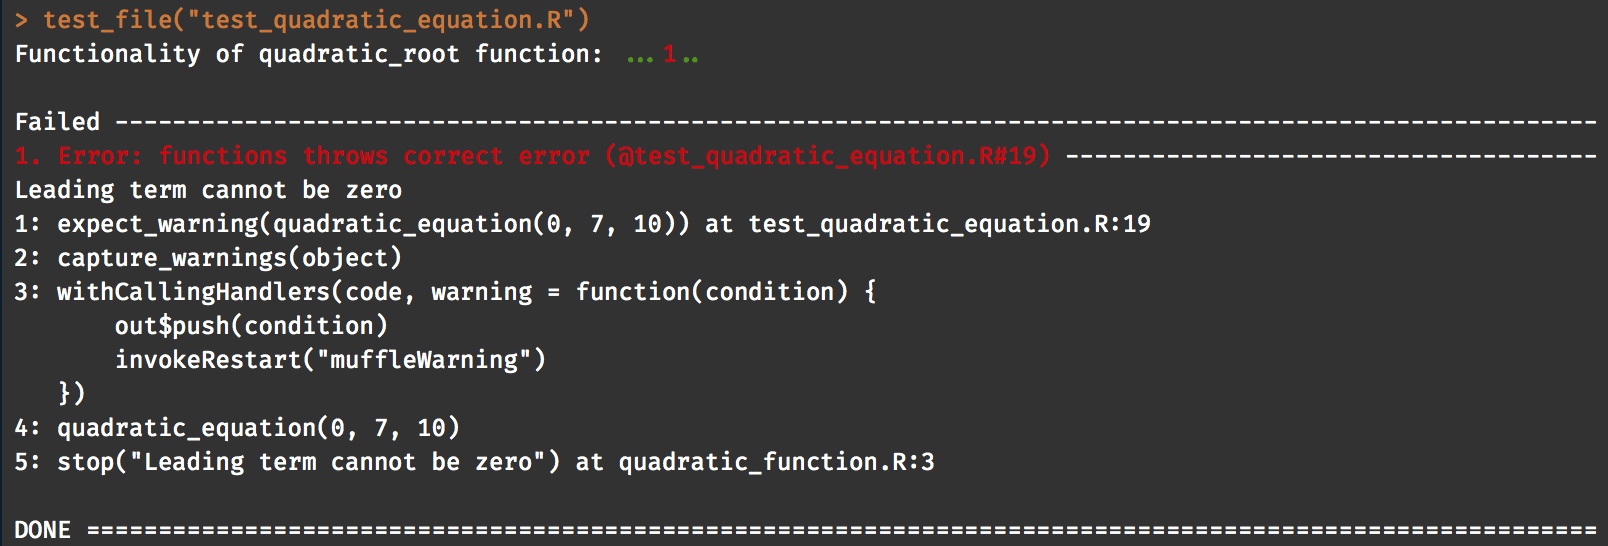 unit test output